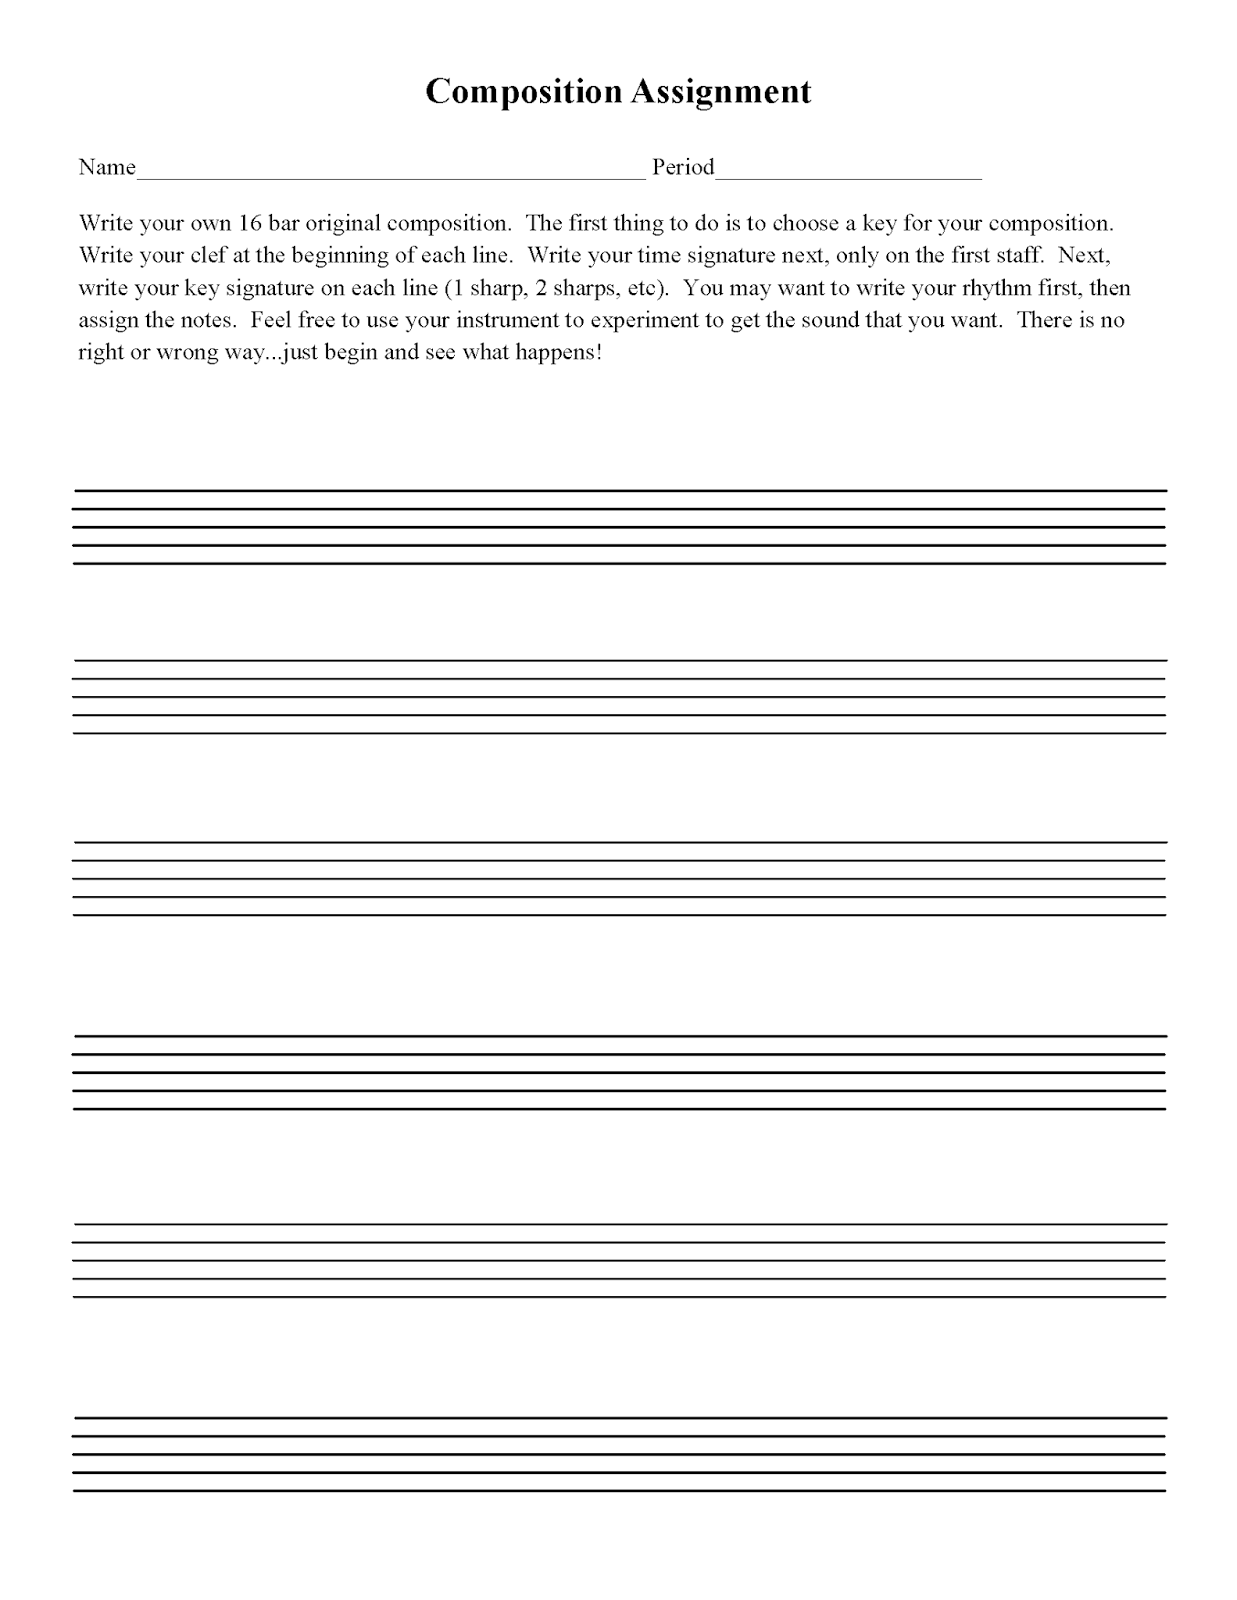 Worksheets Orchestra Worksheets orchestra classroom ideas sub plans for lots of options on youtube and let students work in small groups to create music the movie here are a few worksheets i have used over the